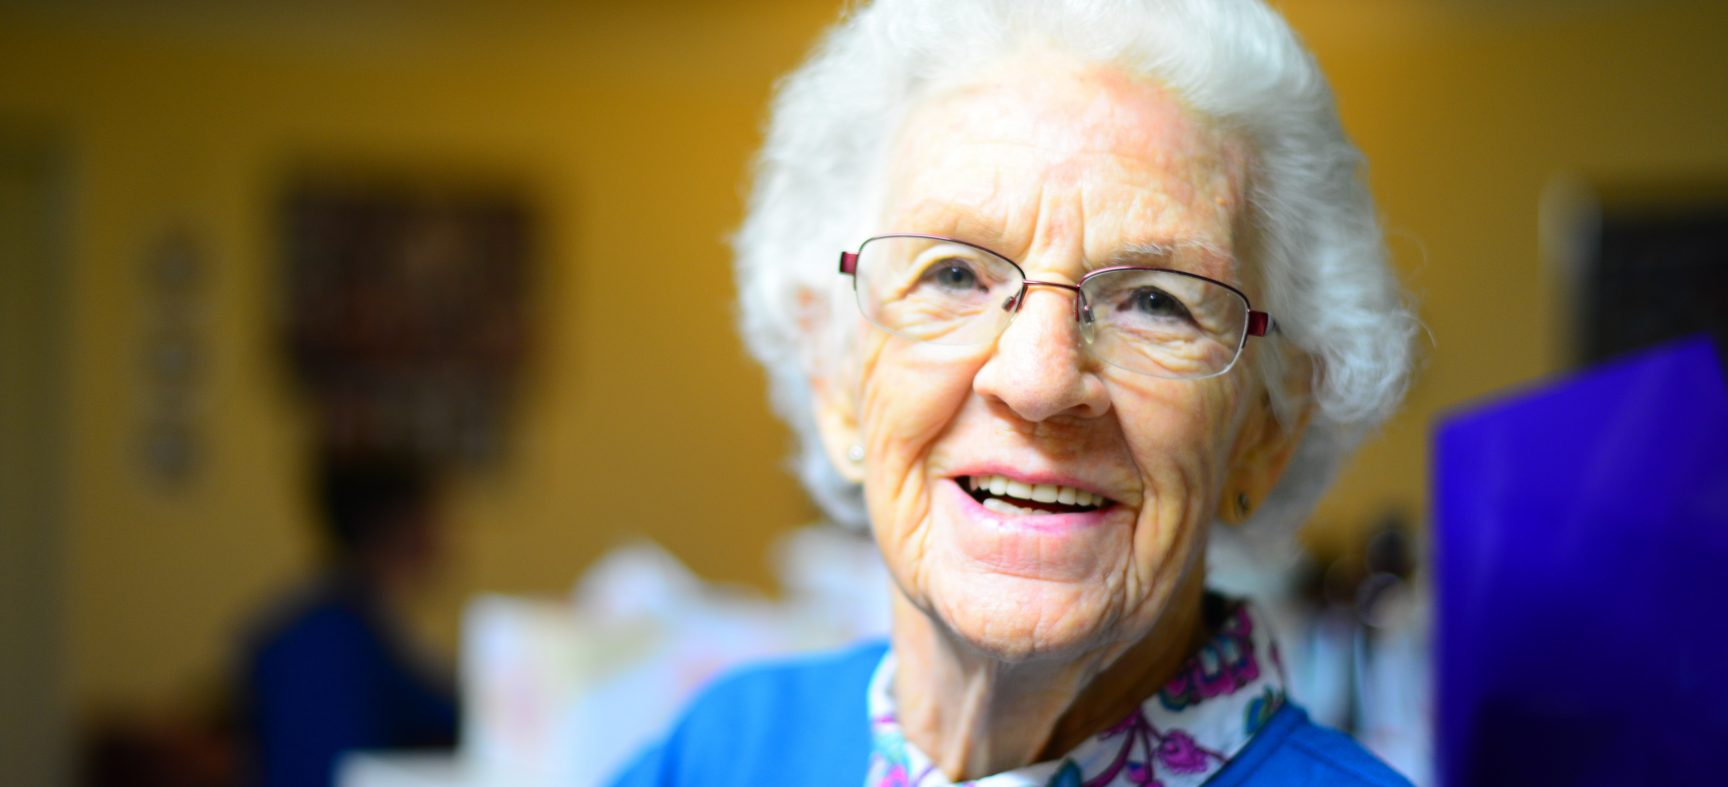 Caring for the Elderly this Winter